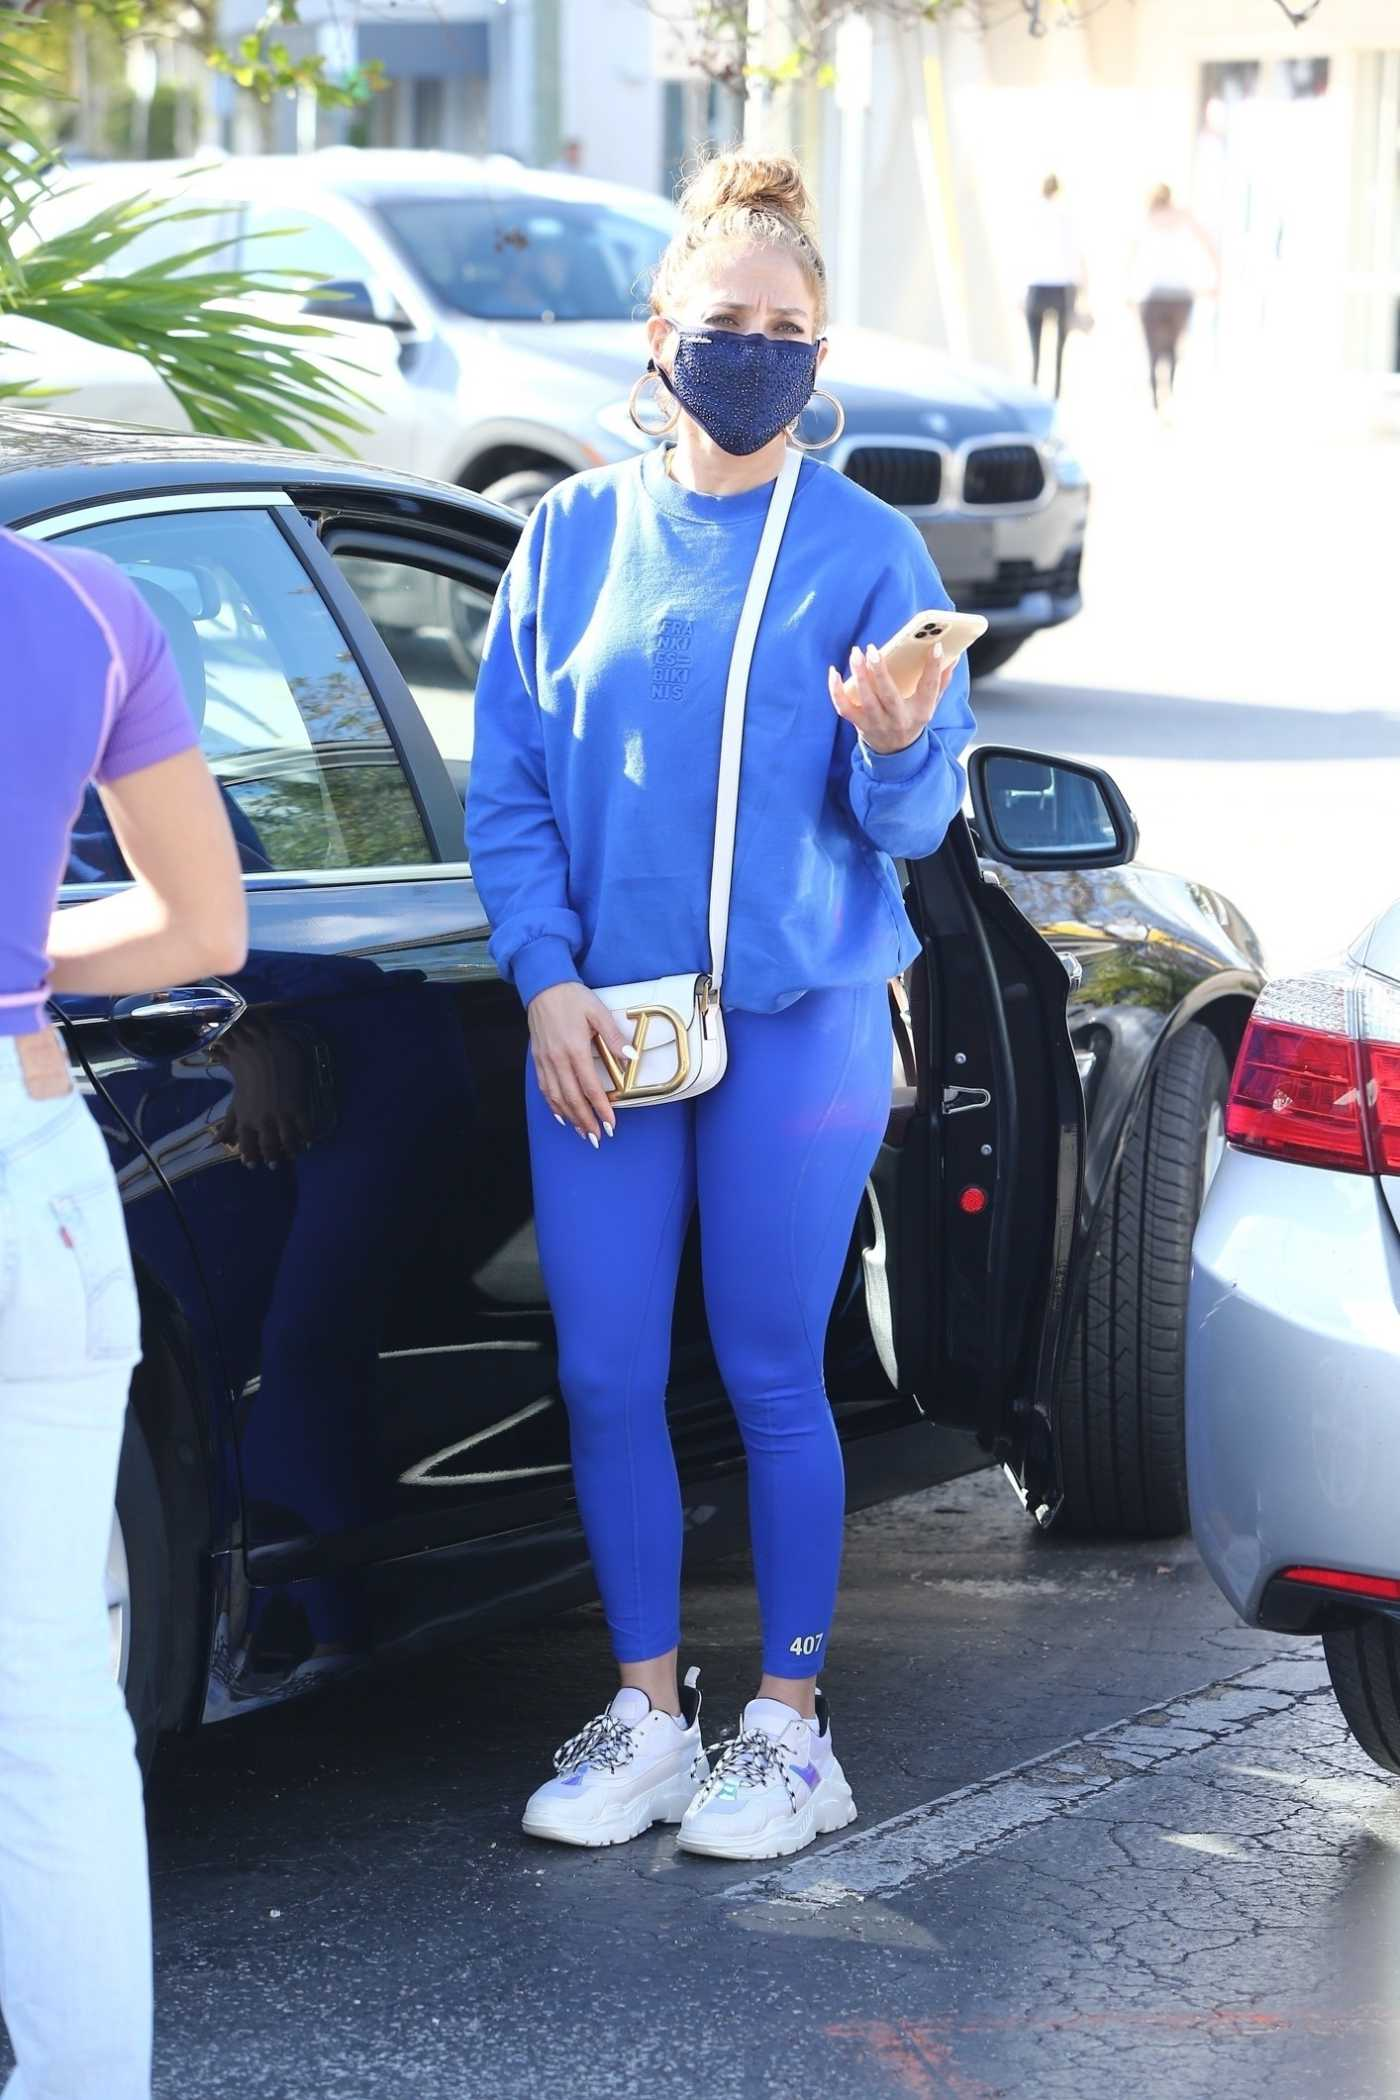 Jennifer Lopez in a Blue Workout Ensemble Was Seen Out for Christmas Shopping in Miami 12/23/2020